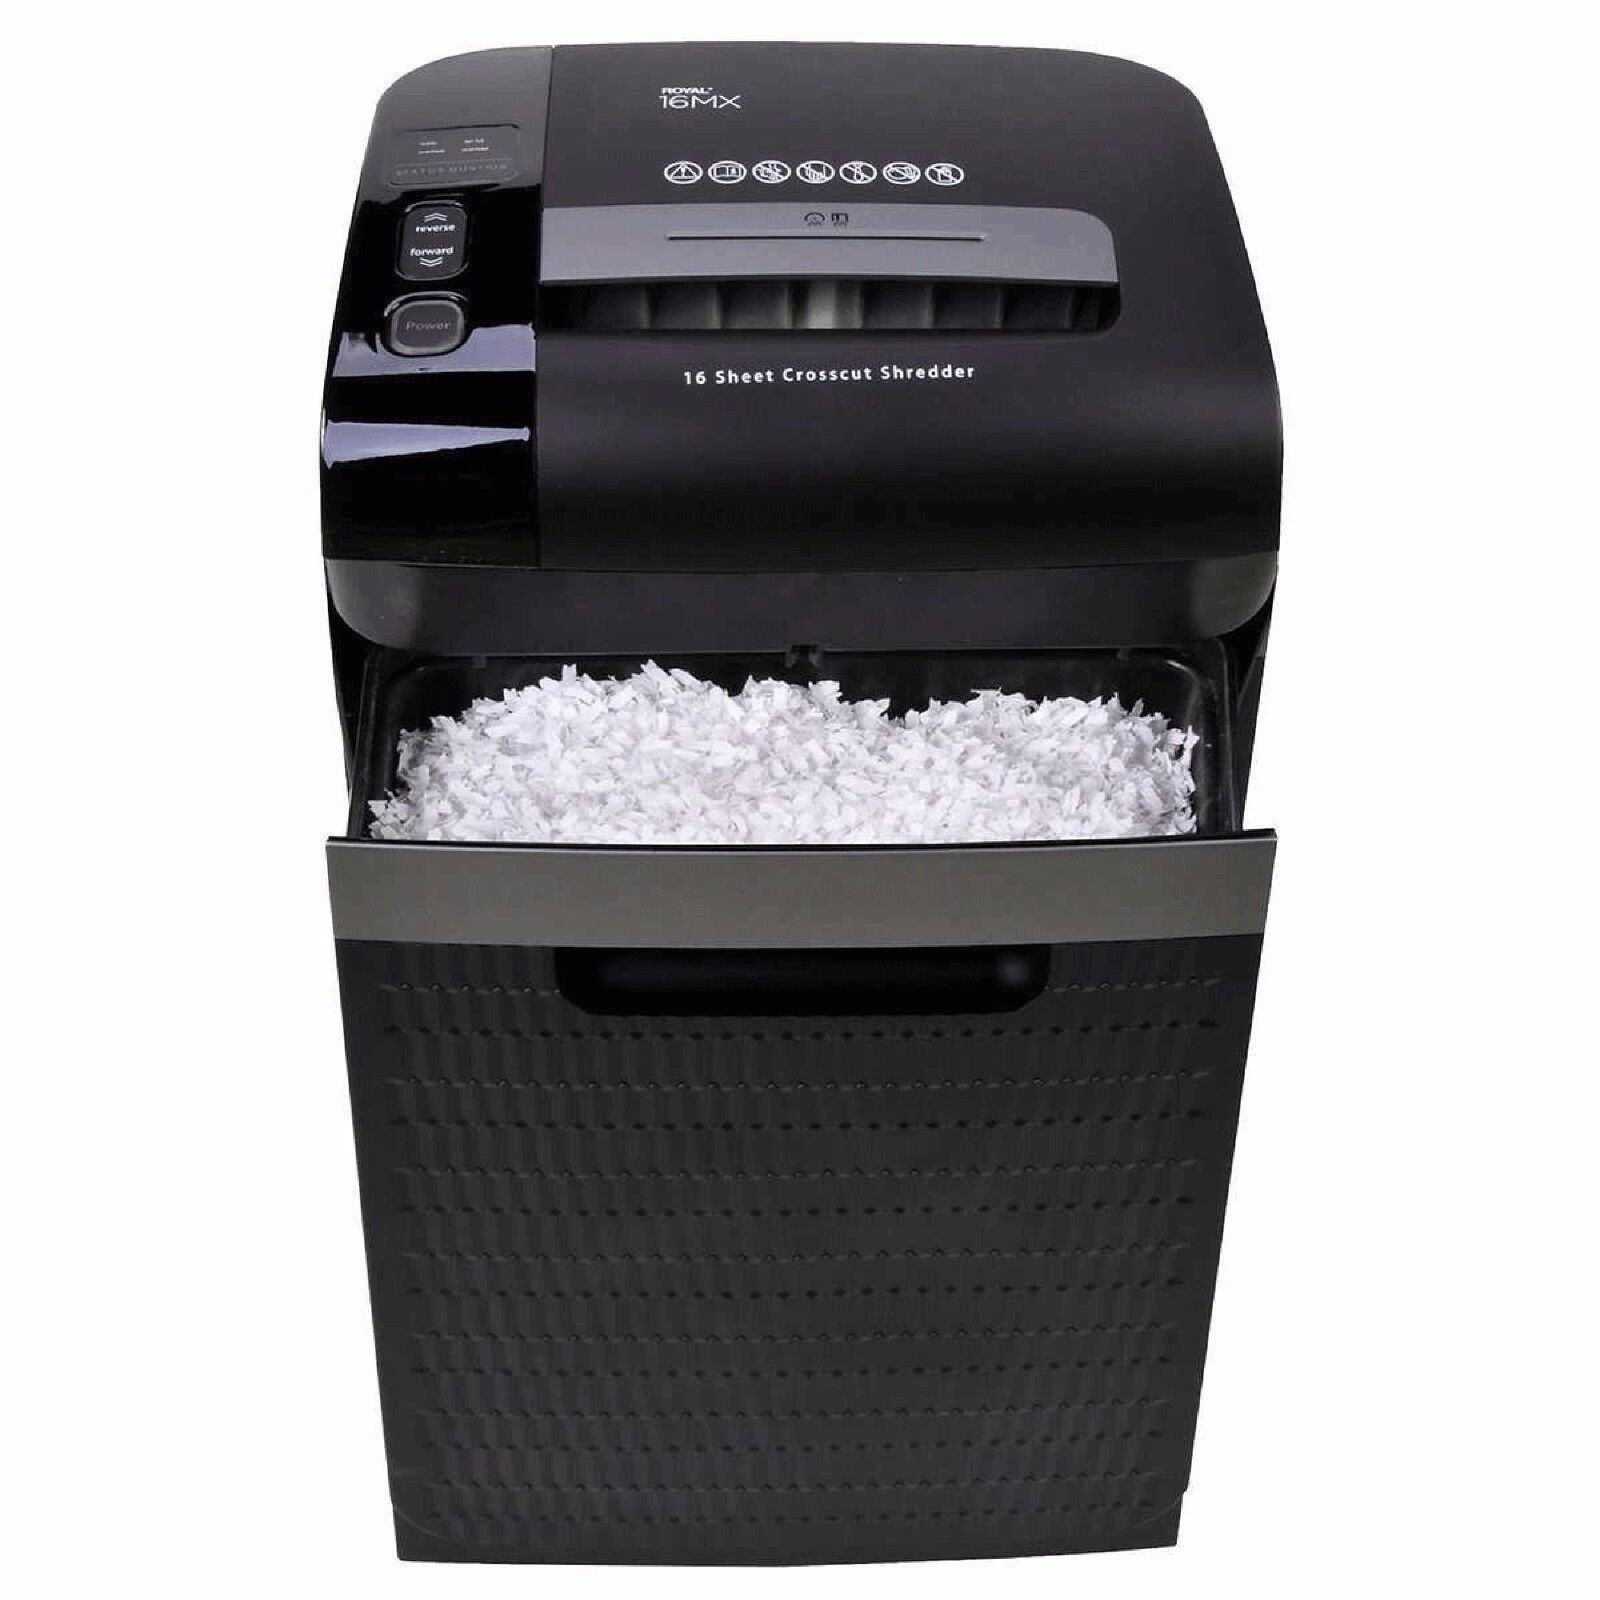 cross cut paper shredder The micro-cut shredder can push 12 sheets (and credit cards) into the nine-inch wide feed slot per pass into 5/65-inch x 9/16-inch cross-cut particles, which stamps it as the most secure shredder on this list.